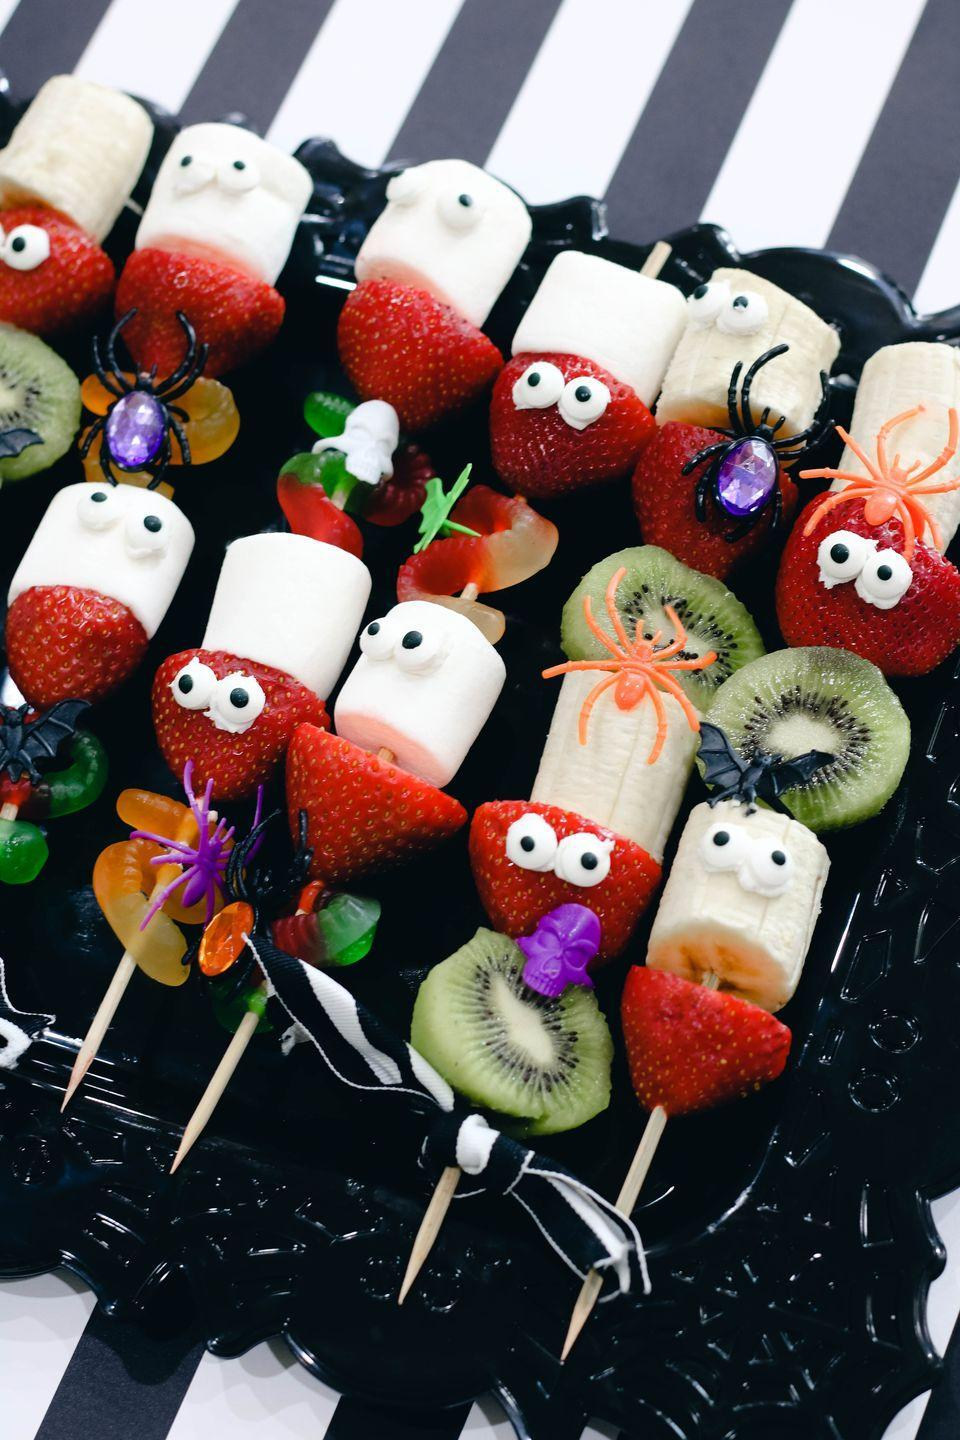 """<p>Fresh fruit and marshmallows are finished off with eyeballs for a fun and easy-to-make treat.</p><p><a class=""""link rapid-noclick-resp"""" href=""""https://www.girllovesglam.com/halloween-skewers-healthy-and-non-healthy-versions/#more-9679"""" rel=""""nofollow noopener"""" target=""""_blank"""" data-ylk=""""slk:GET THE RECIPE"""">GET THE RECIPE</a></p>"""